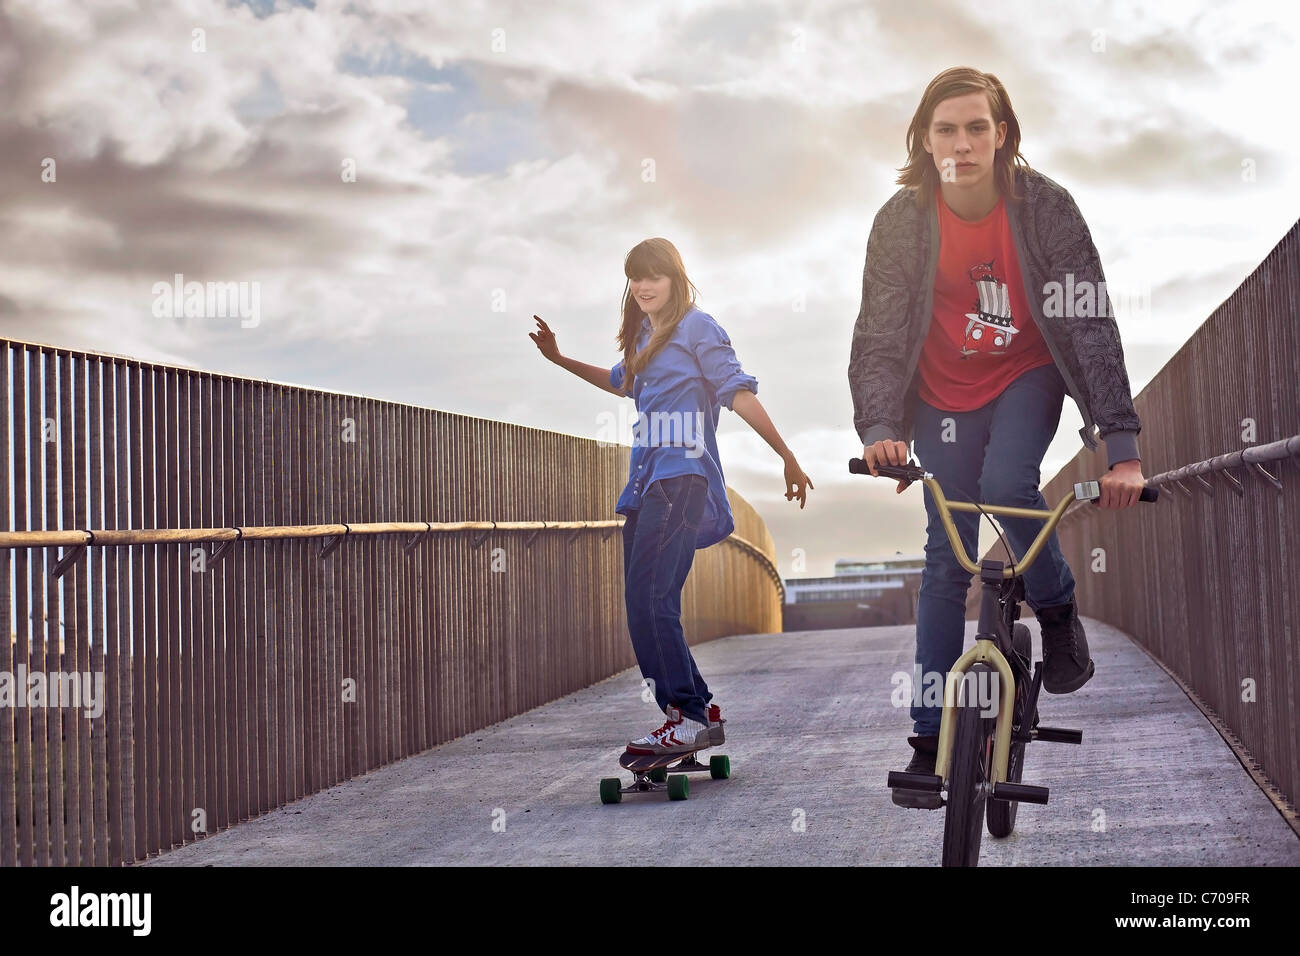 Teenagers riding bicycle and skateboard - Stock Image